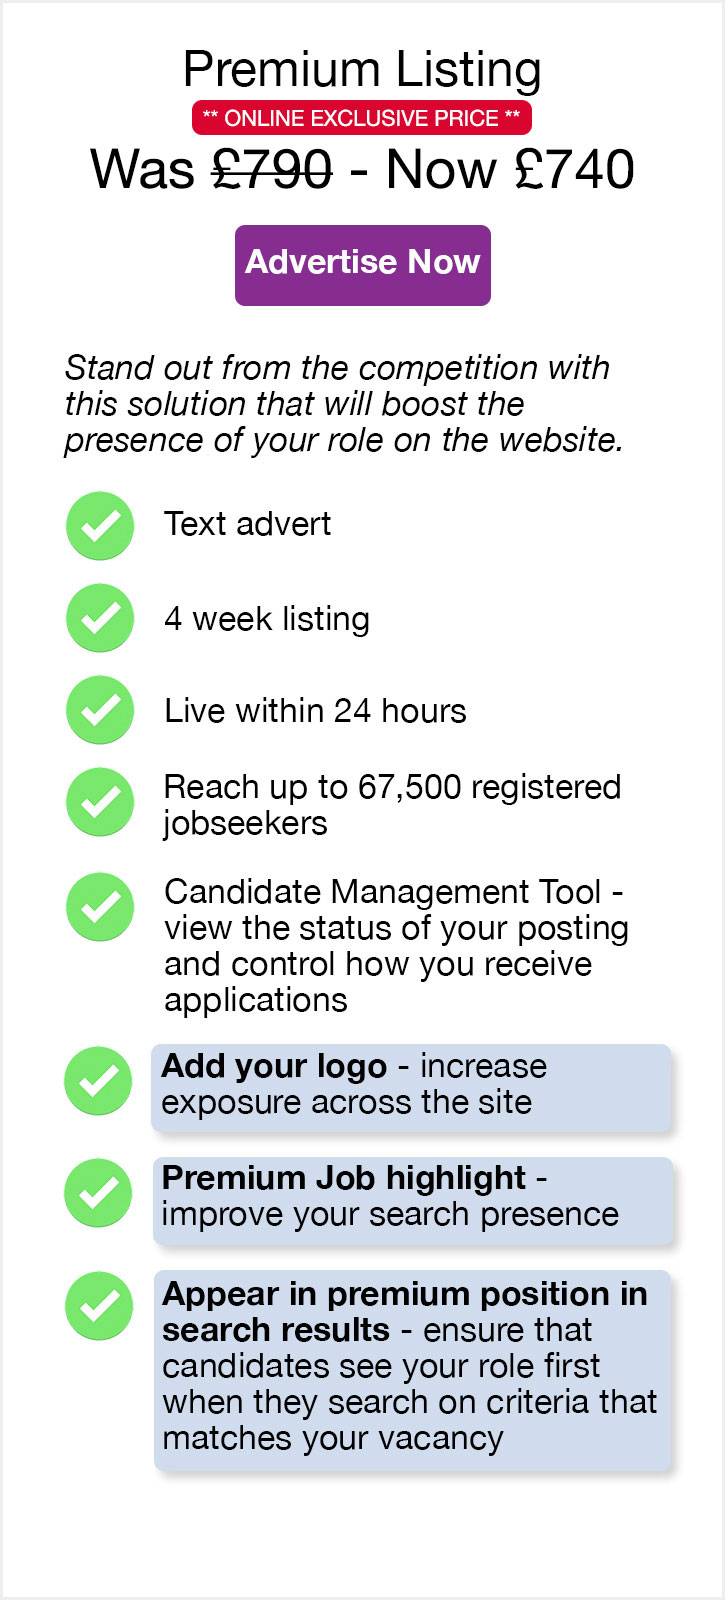 Premium Listing. £790. Advertise Now. Stand out from the competition with this solution that can boost the presence of your role on the website. Text advert. 4 week listing. Live within 24 hours. Reach up to 67,500 registered jobseekers. Candidate Management Tool - view the status of your posting and control how you receive applications. Add your logo - increase exposure across the site. Premium Job highlight - - improve your search presence. Appear in premium position in search results - ensure that candidates see your role first when they search on criteria that matches your vacancy.